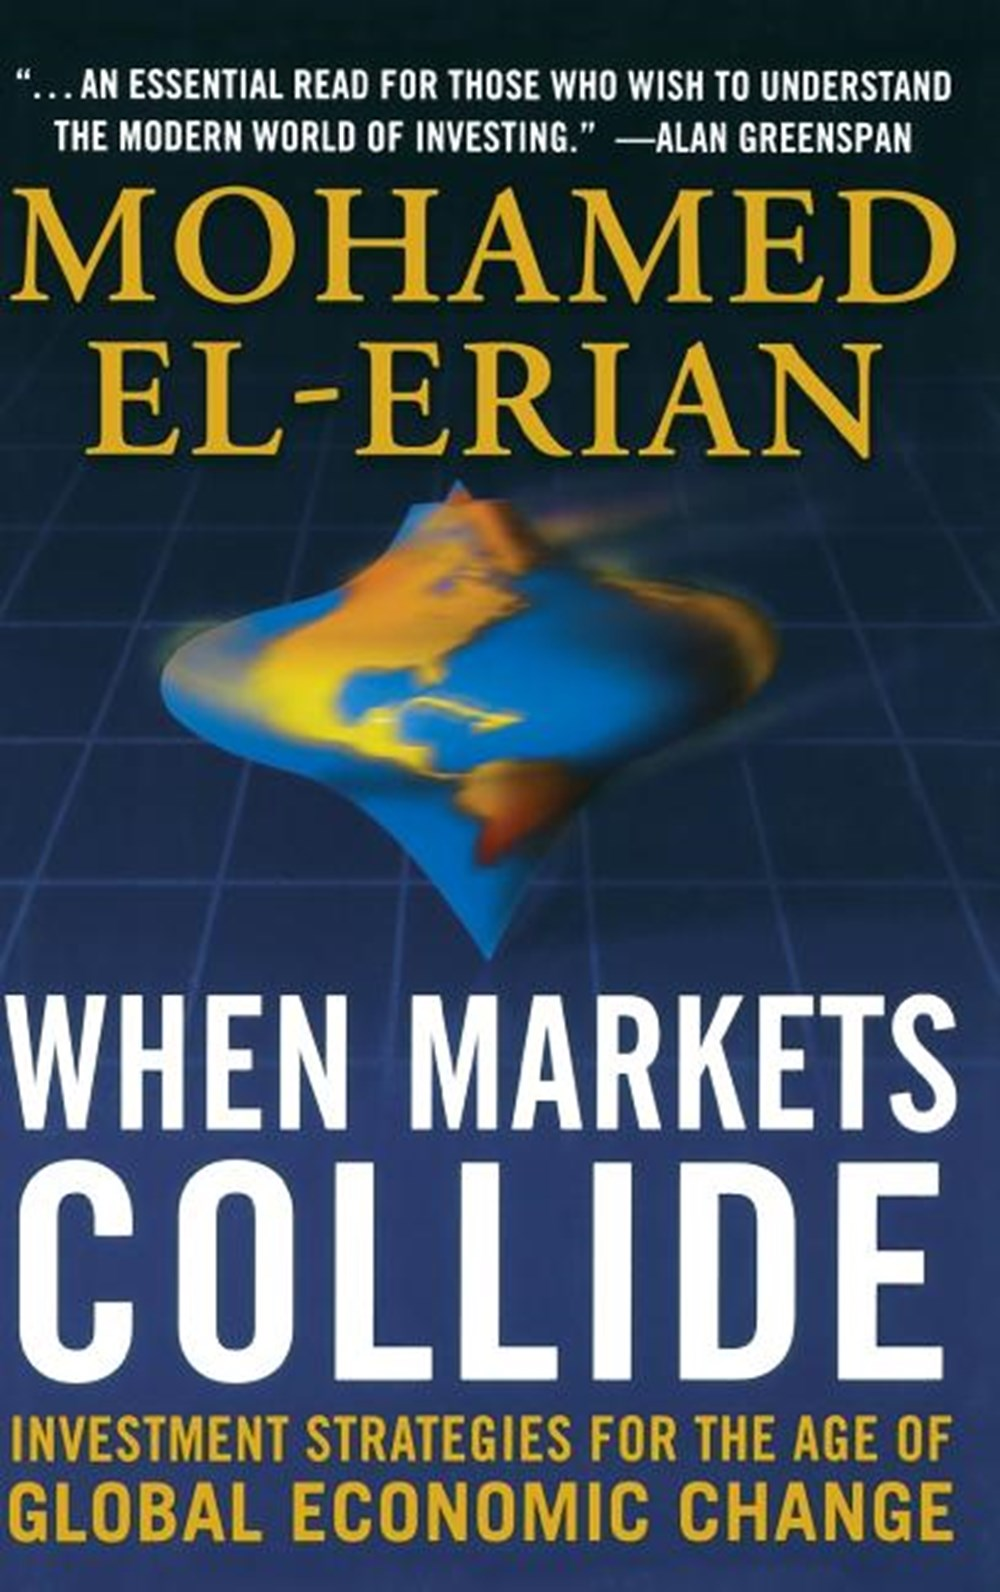 When Markets Collide Investment Strategies for the Age of Global Economic Change